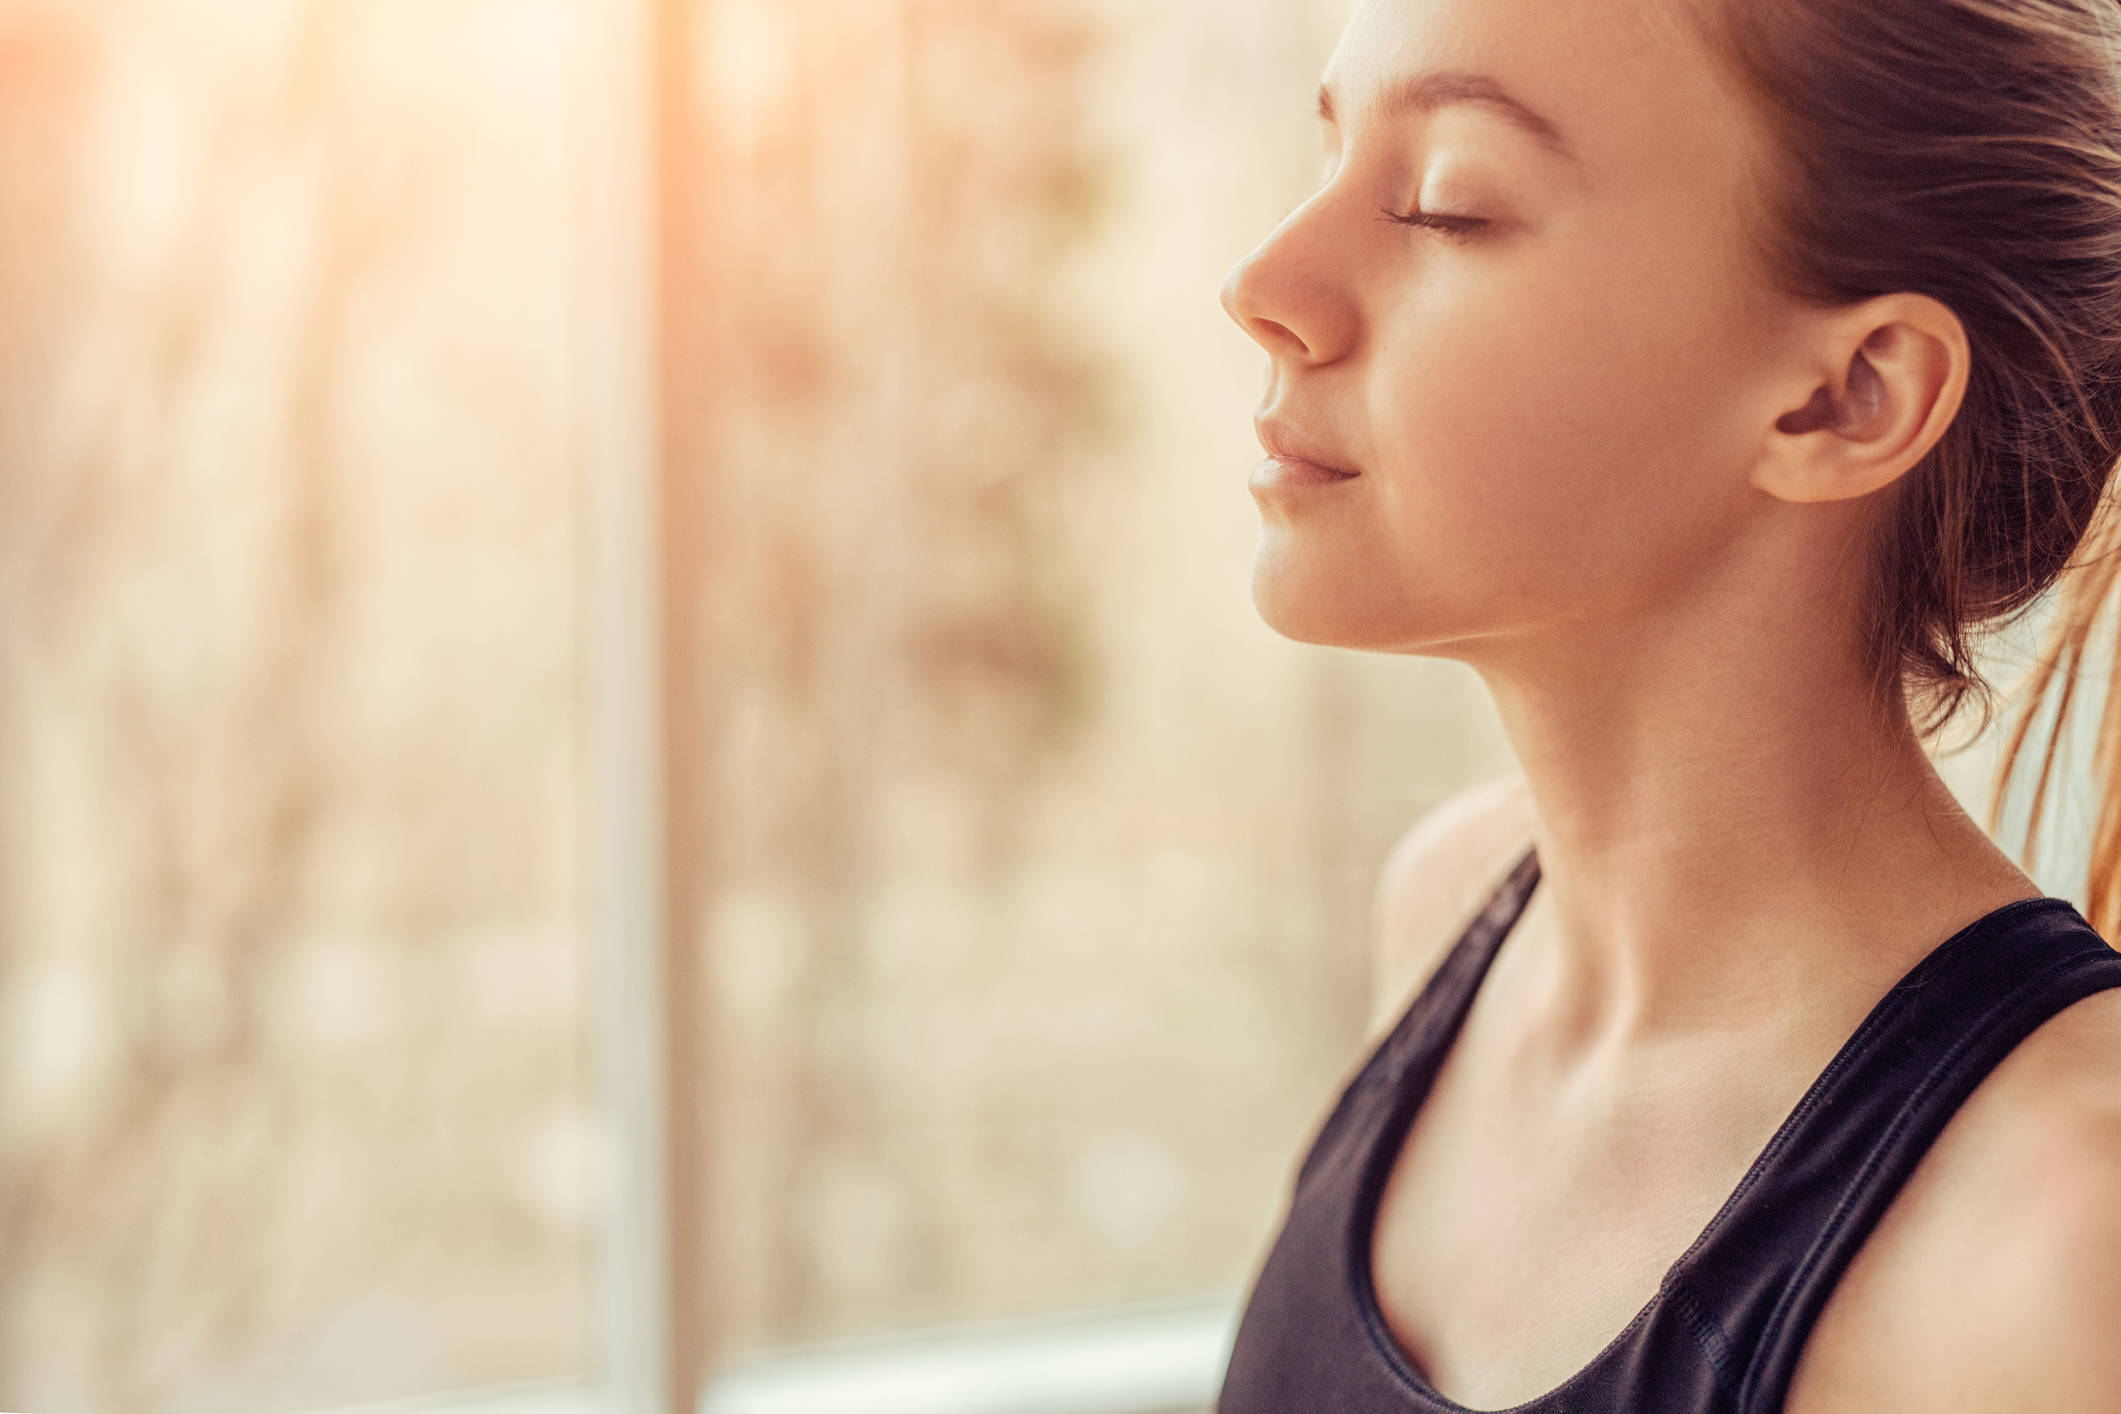 Got pain? Stop and count backwards to reduce it by half